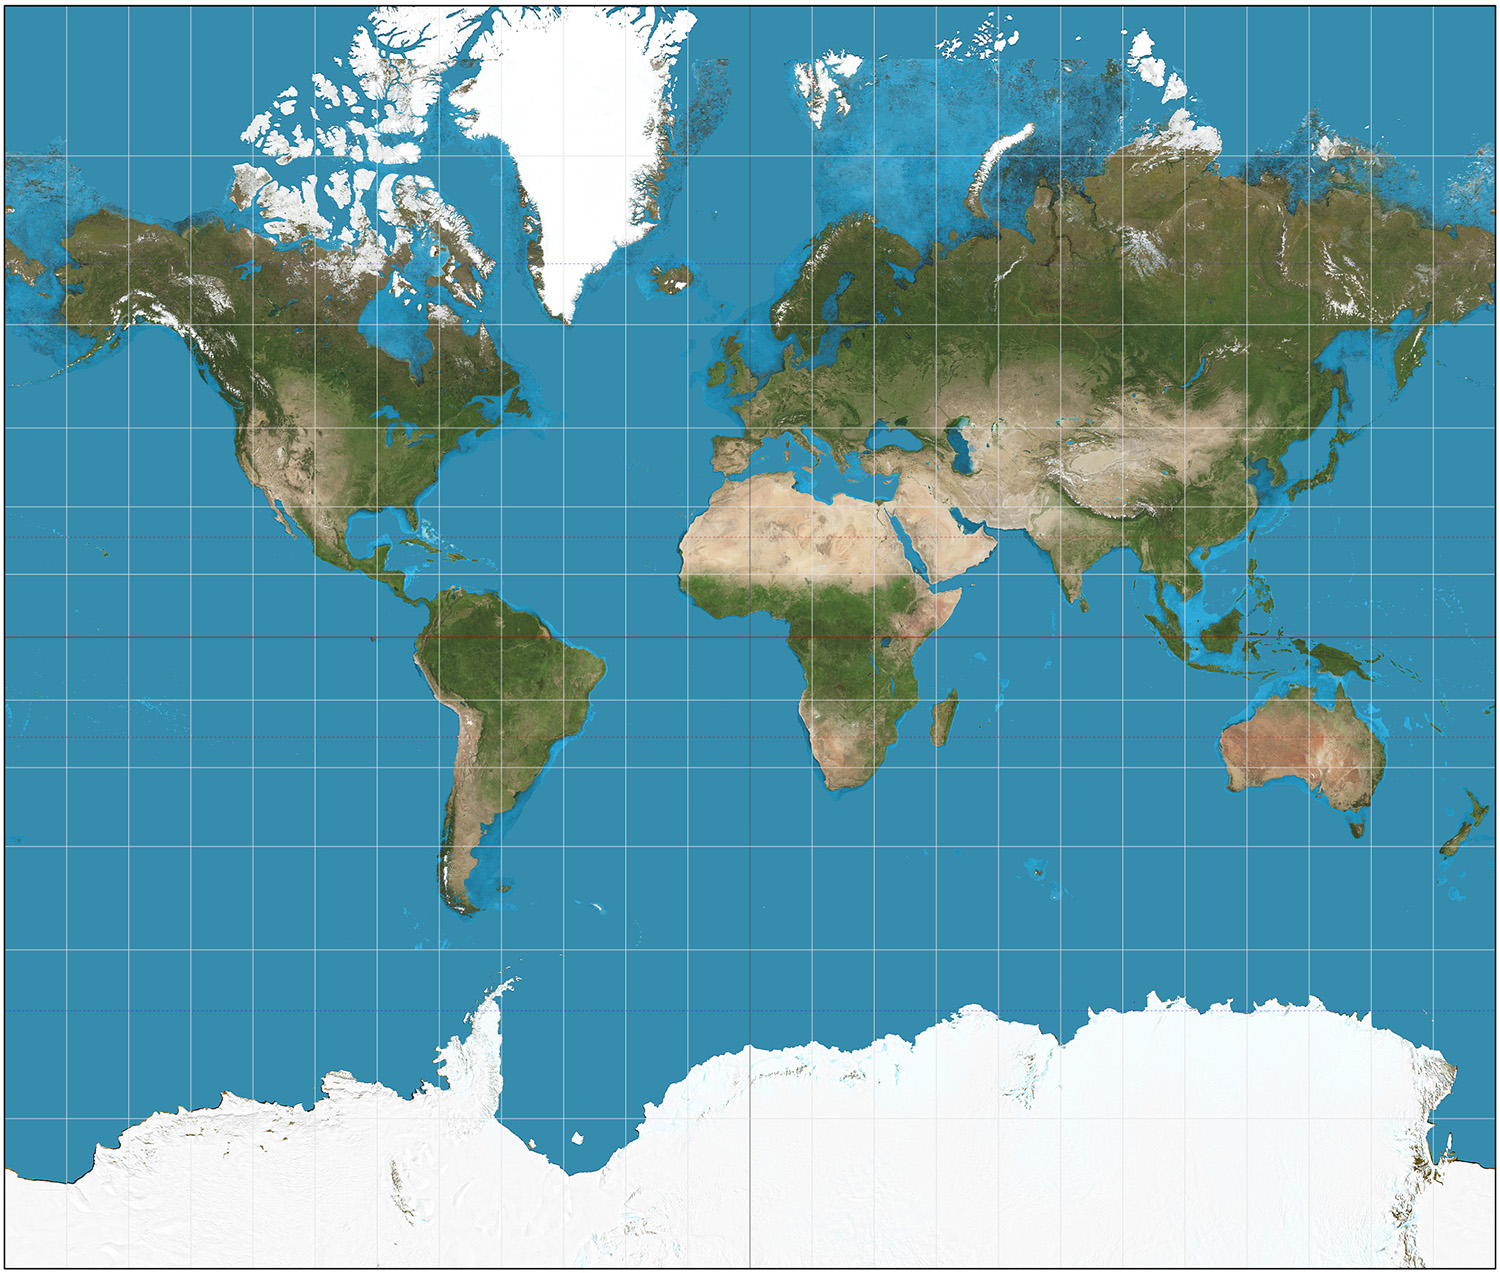 Mercator projection of the world centred around Europe.  Purpose of image is to highlight how a 2D representation of the world is not accurate.  © Daniel R. Strebe, 15 August 2011 / Wikimedia Commons / CC-BY-SA-3.0